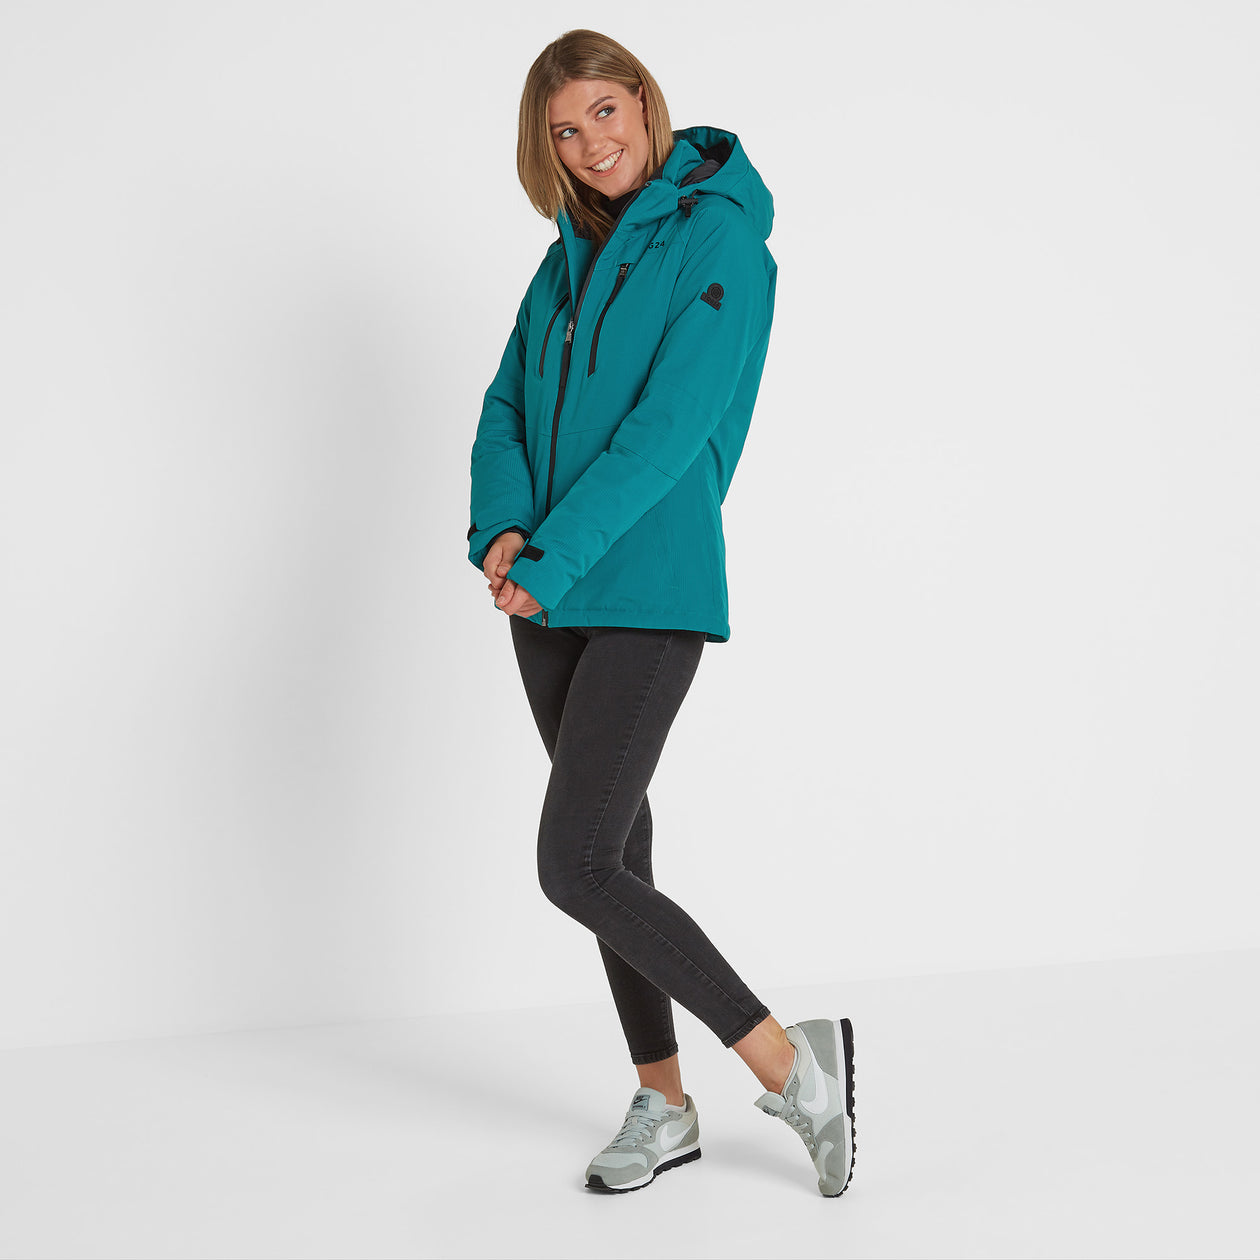 Riley Womens Winter Jacket - Topaz image 4